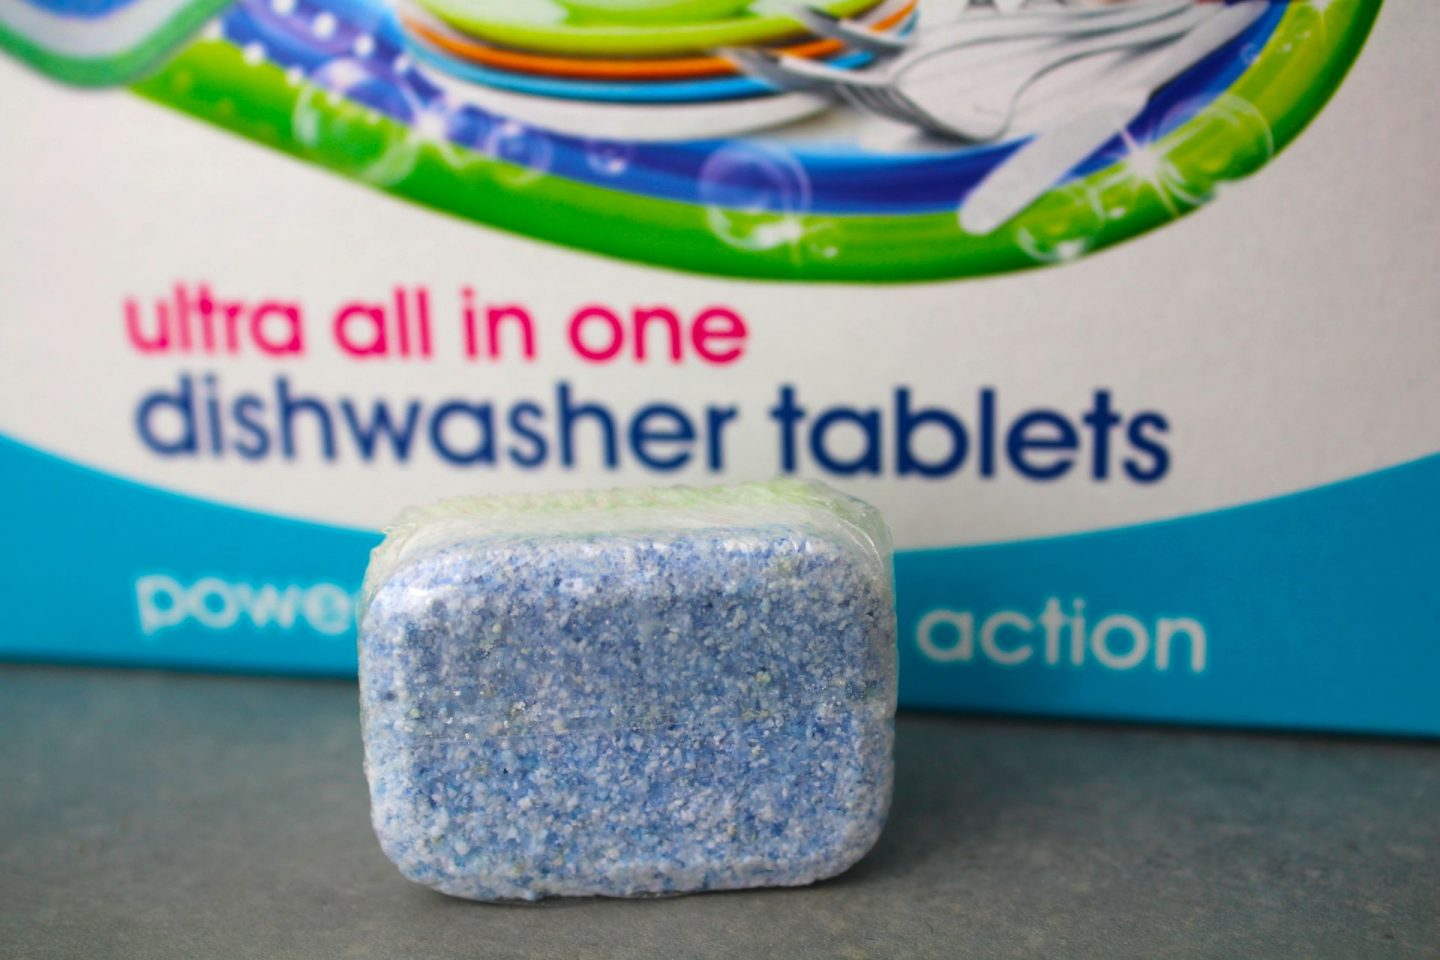 environmentally friendly dishwasher tablet from Ecozone.